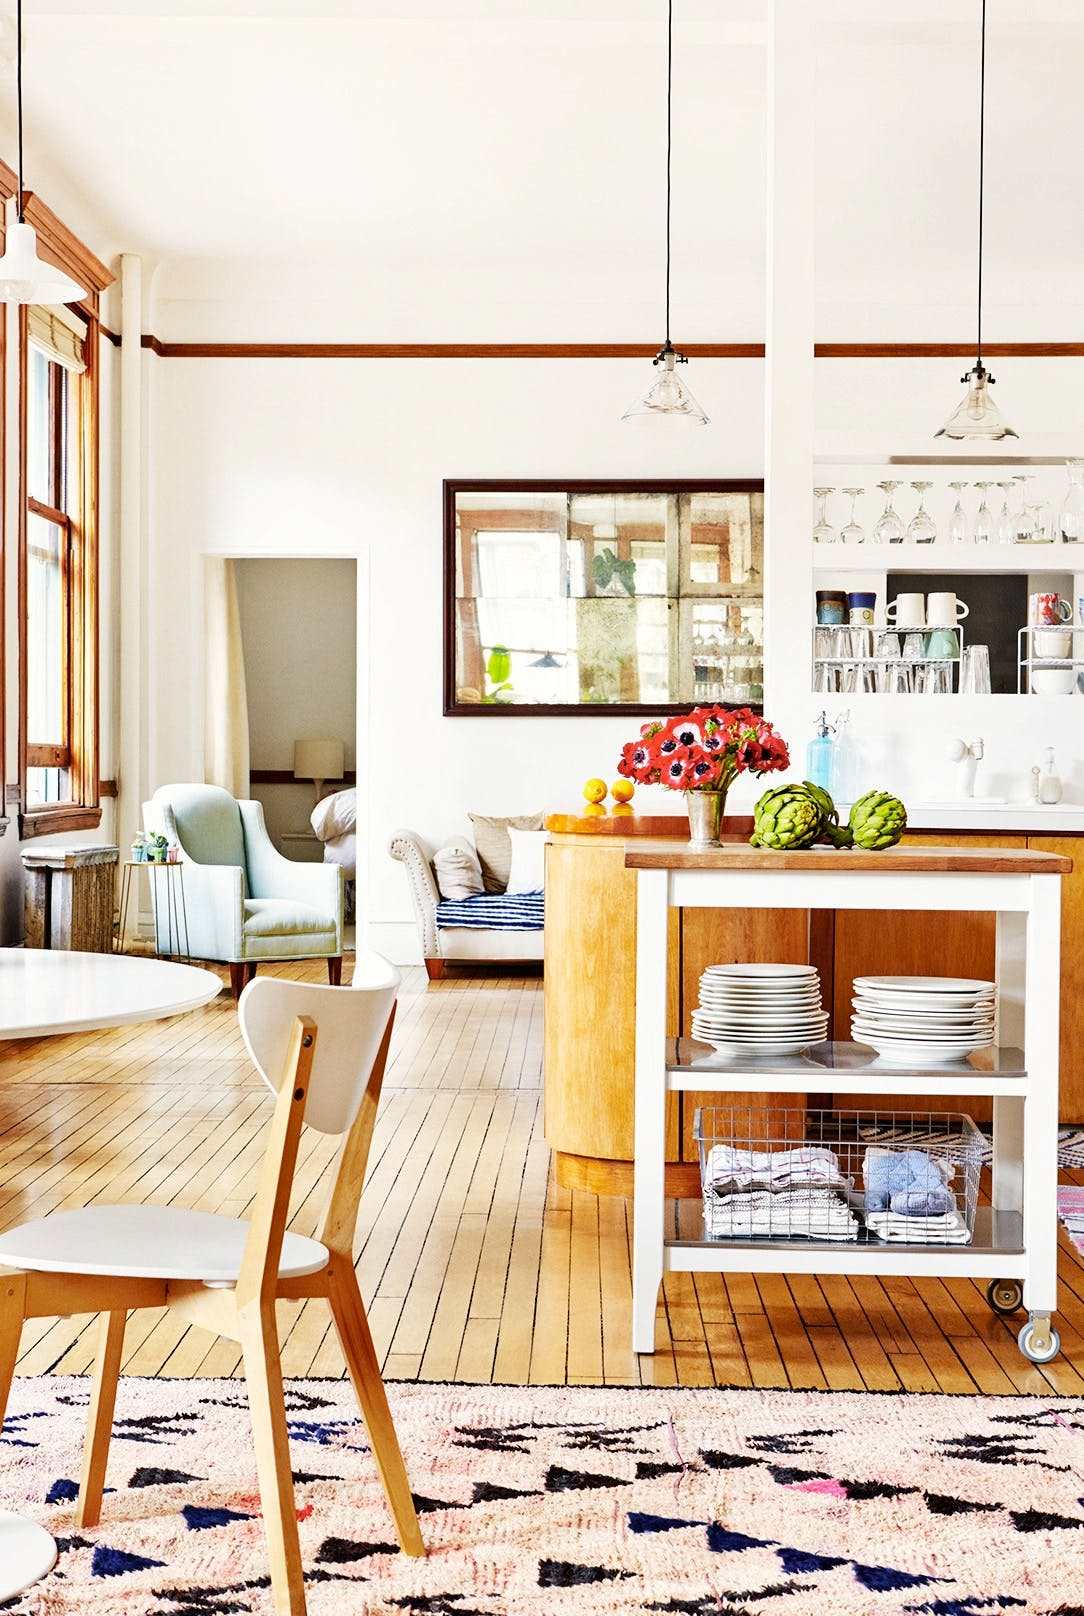 19 Gorgeous Kitchen Open Shelving That Will Inspire You - Homelovr on long showers ideas, long kitchen islands with seating, long kitchen counter bar stools, long sunroom ideas, long roof ideas, long den ideas, long painting ideas, long kitchen cart, long kitchen island design, long entrance ideas, long pantry ideas, long bang ideas, long kitchen layout, long kitchen renovations, long bar ideas, long entryway ideas, long porch ideas, long narrow kitchen, long house ideas, long backyard landscape ideas,